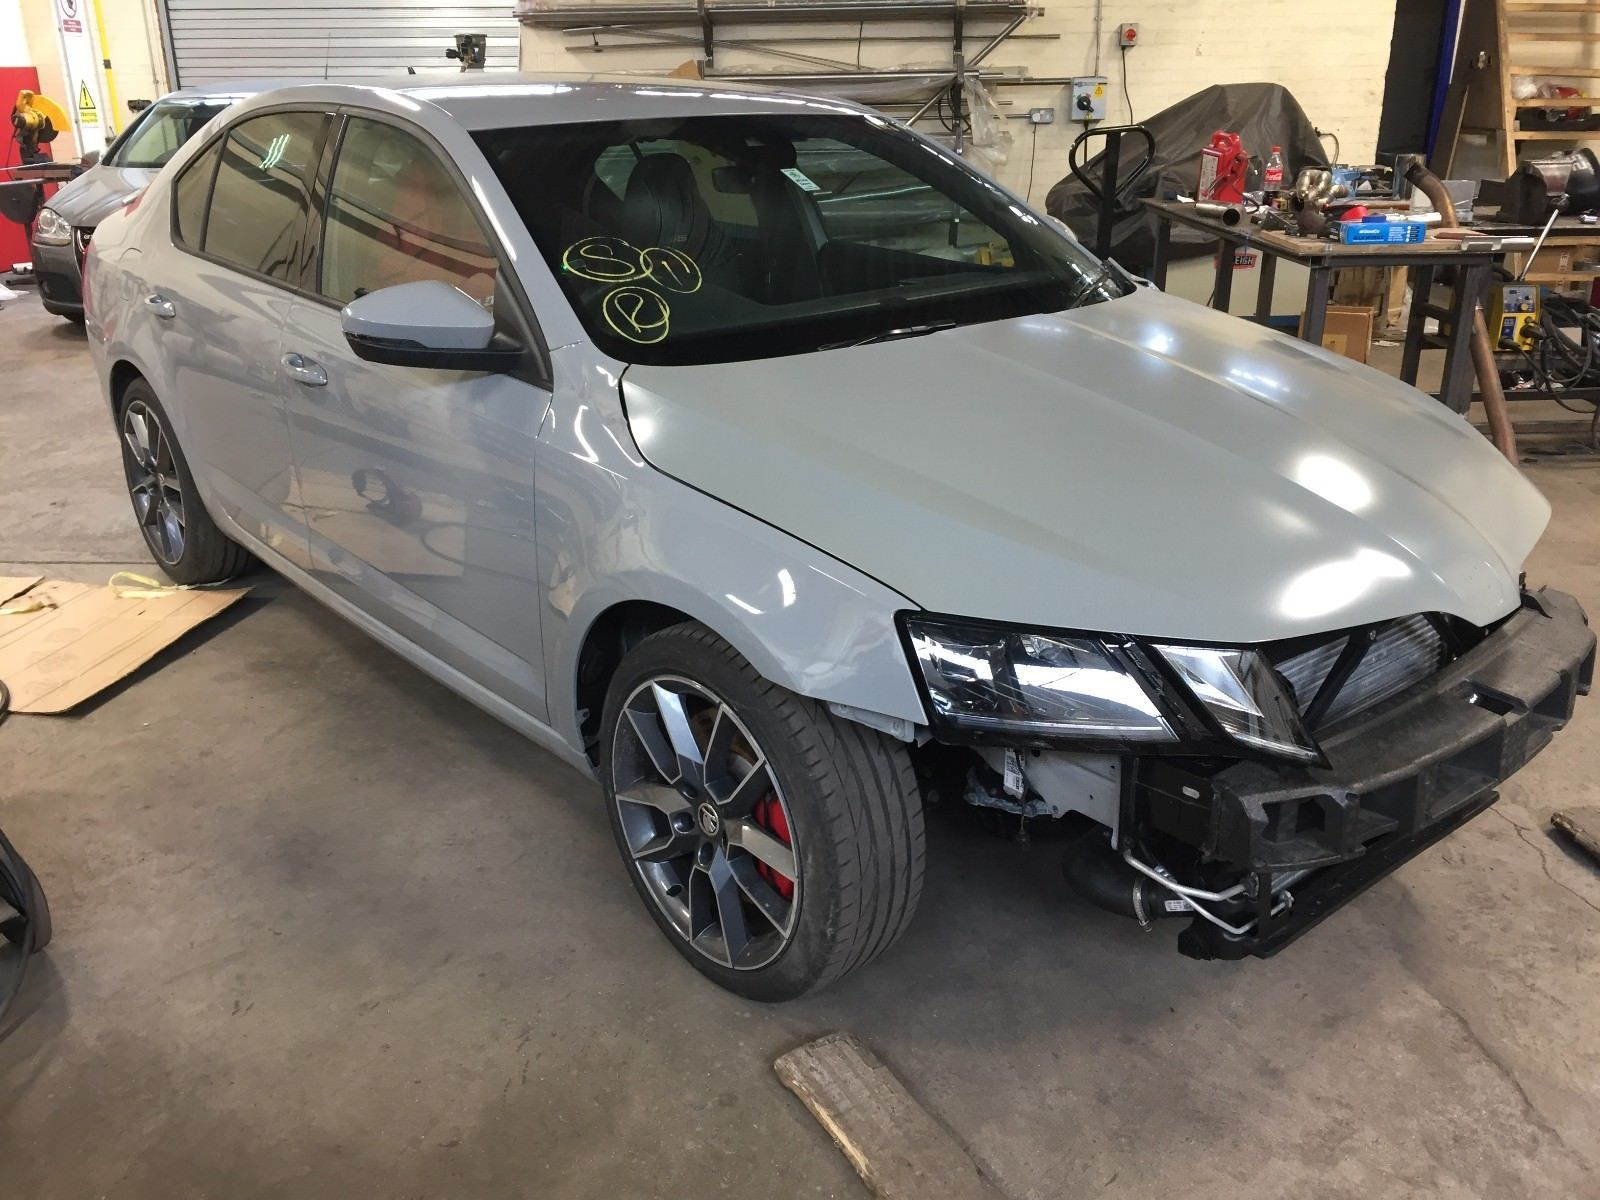 2017 skoda octavia vrs grey only 4000 miles damaged repairable